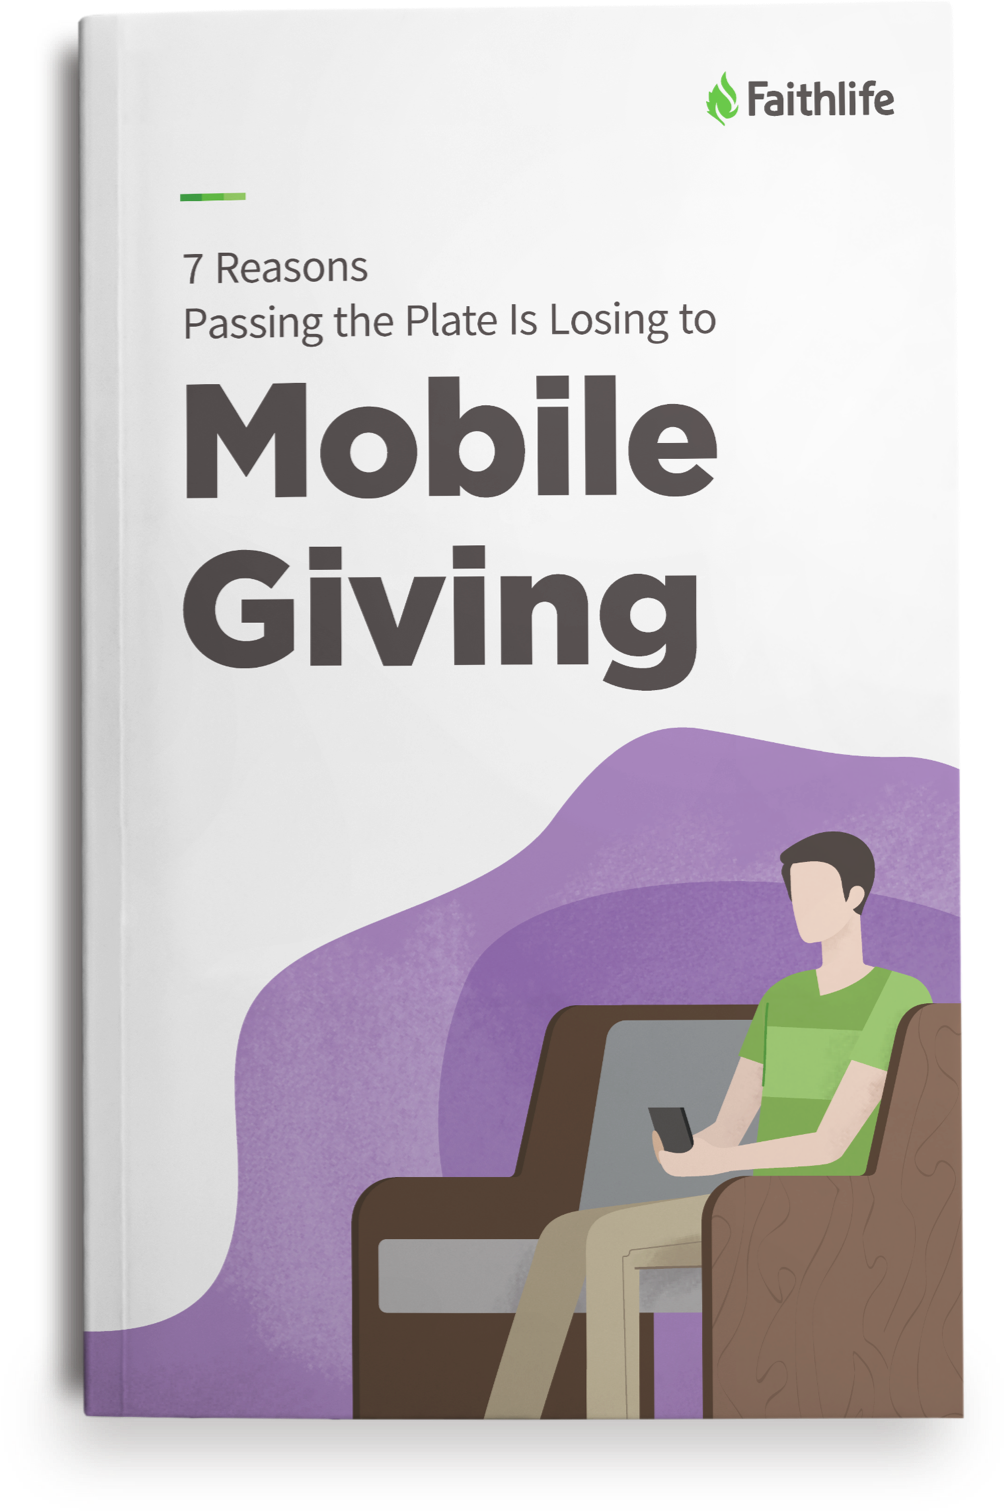 7 Reasons Passing the Plate Is Losing to Mobile Giving